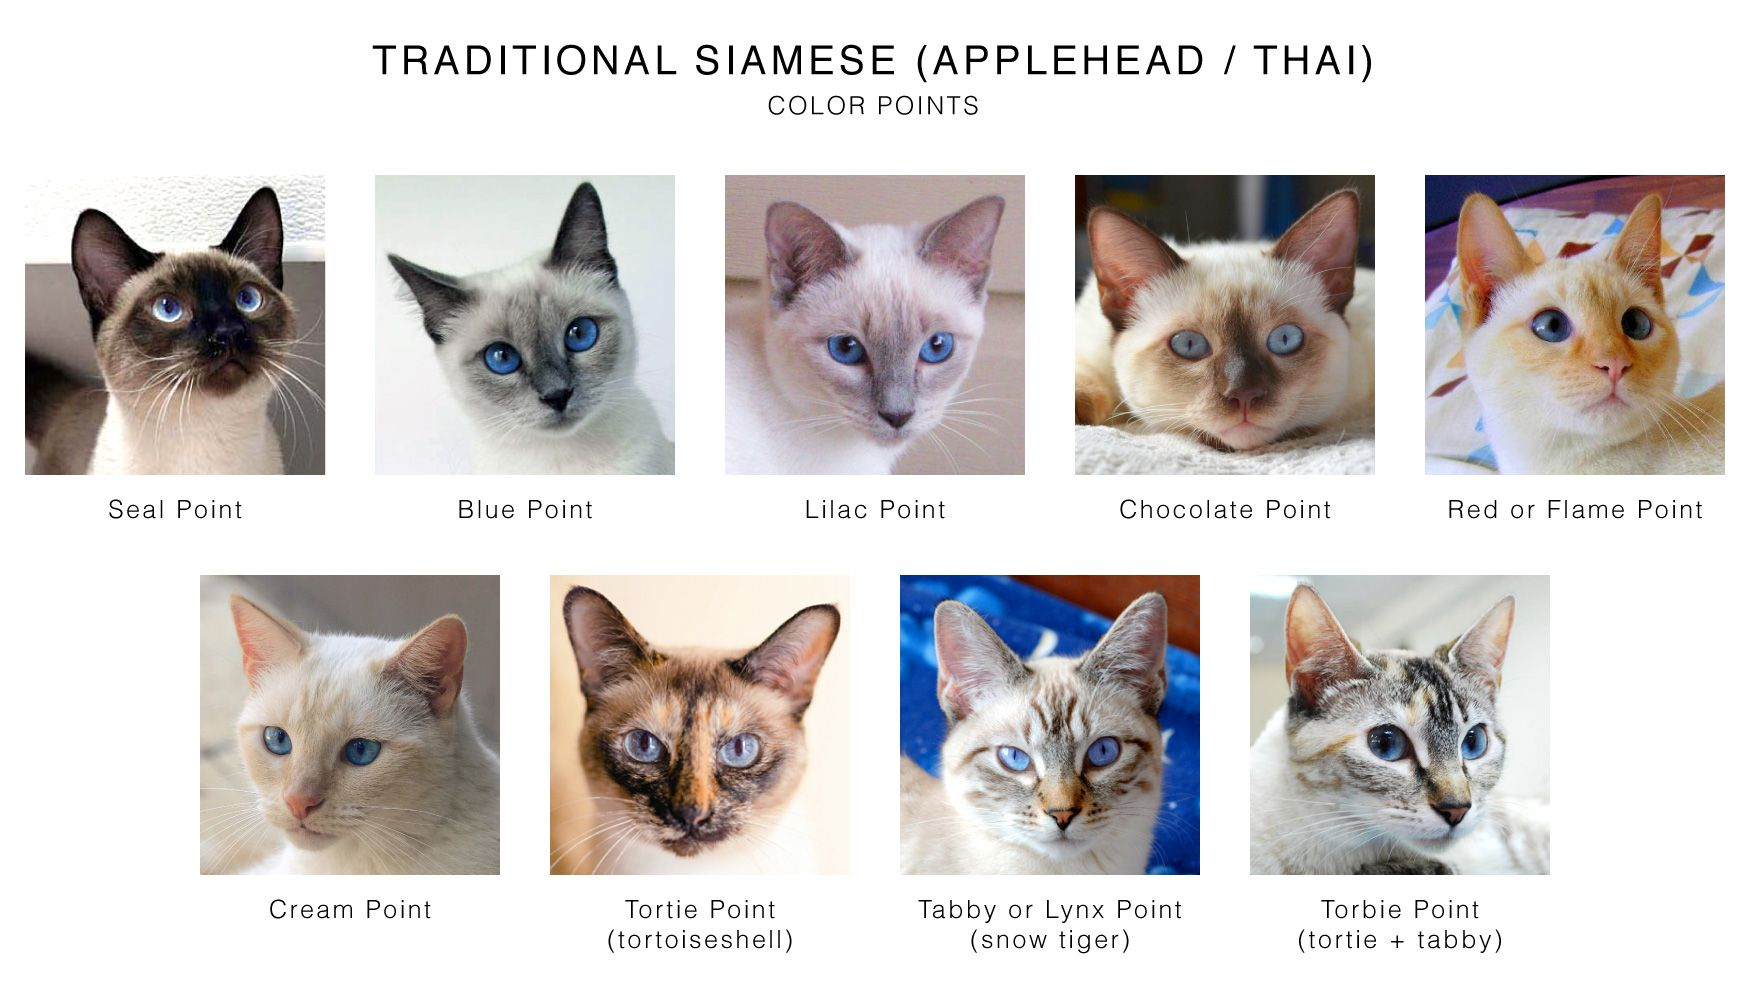 Traditional Siamese (Applehead / Thai) Color Points Chart